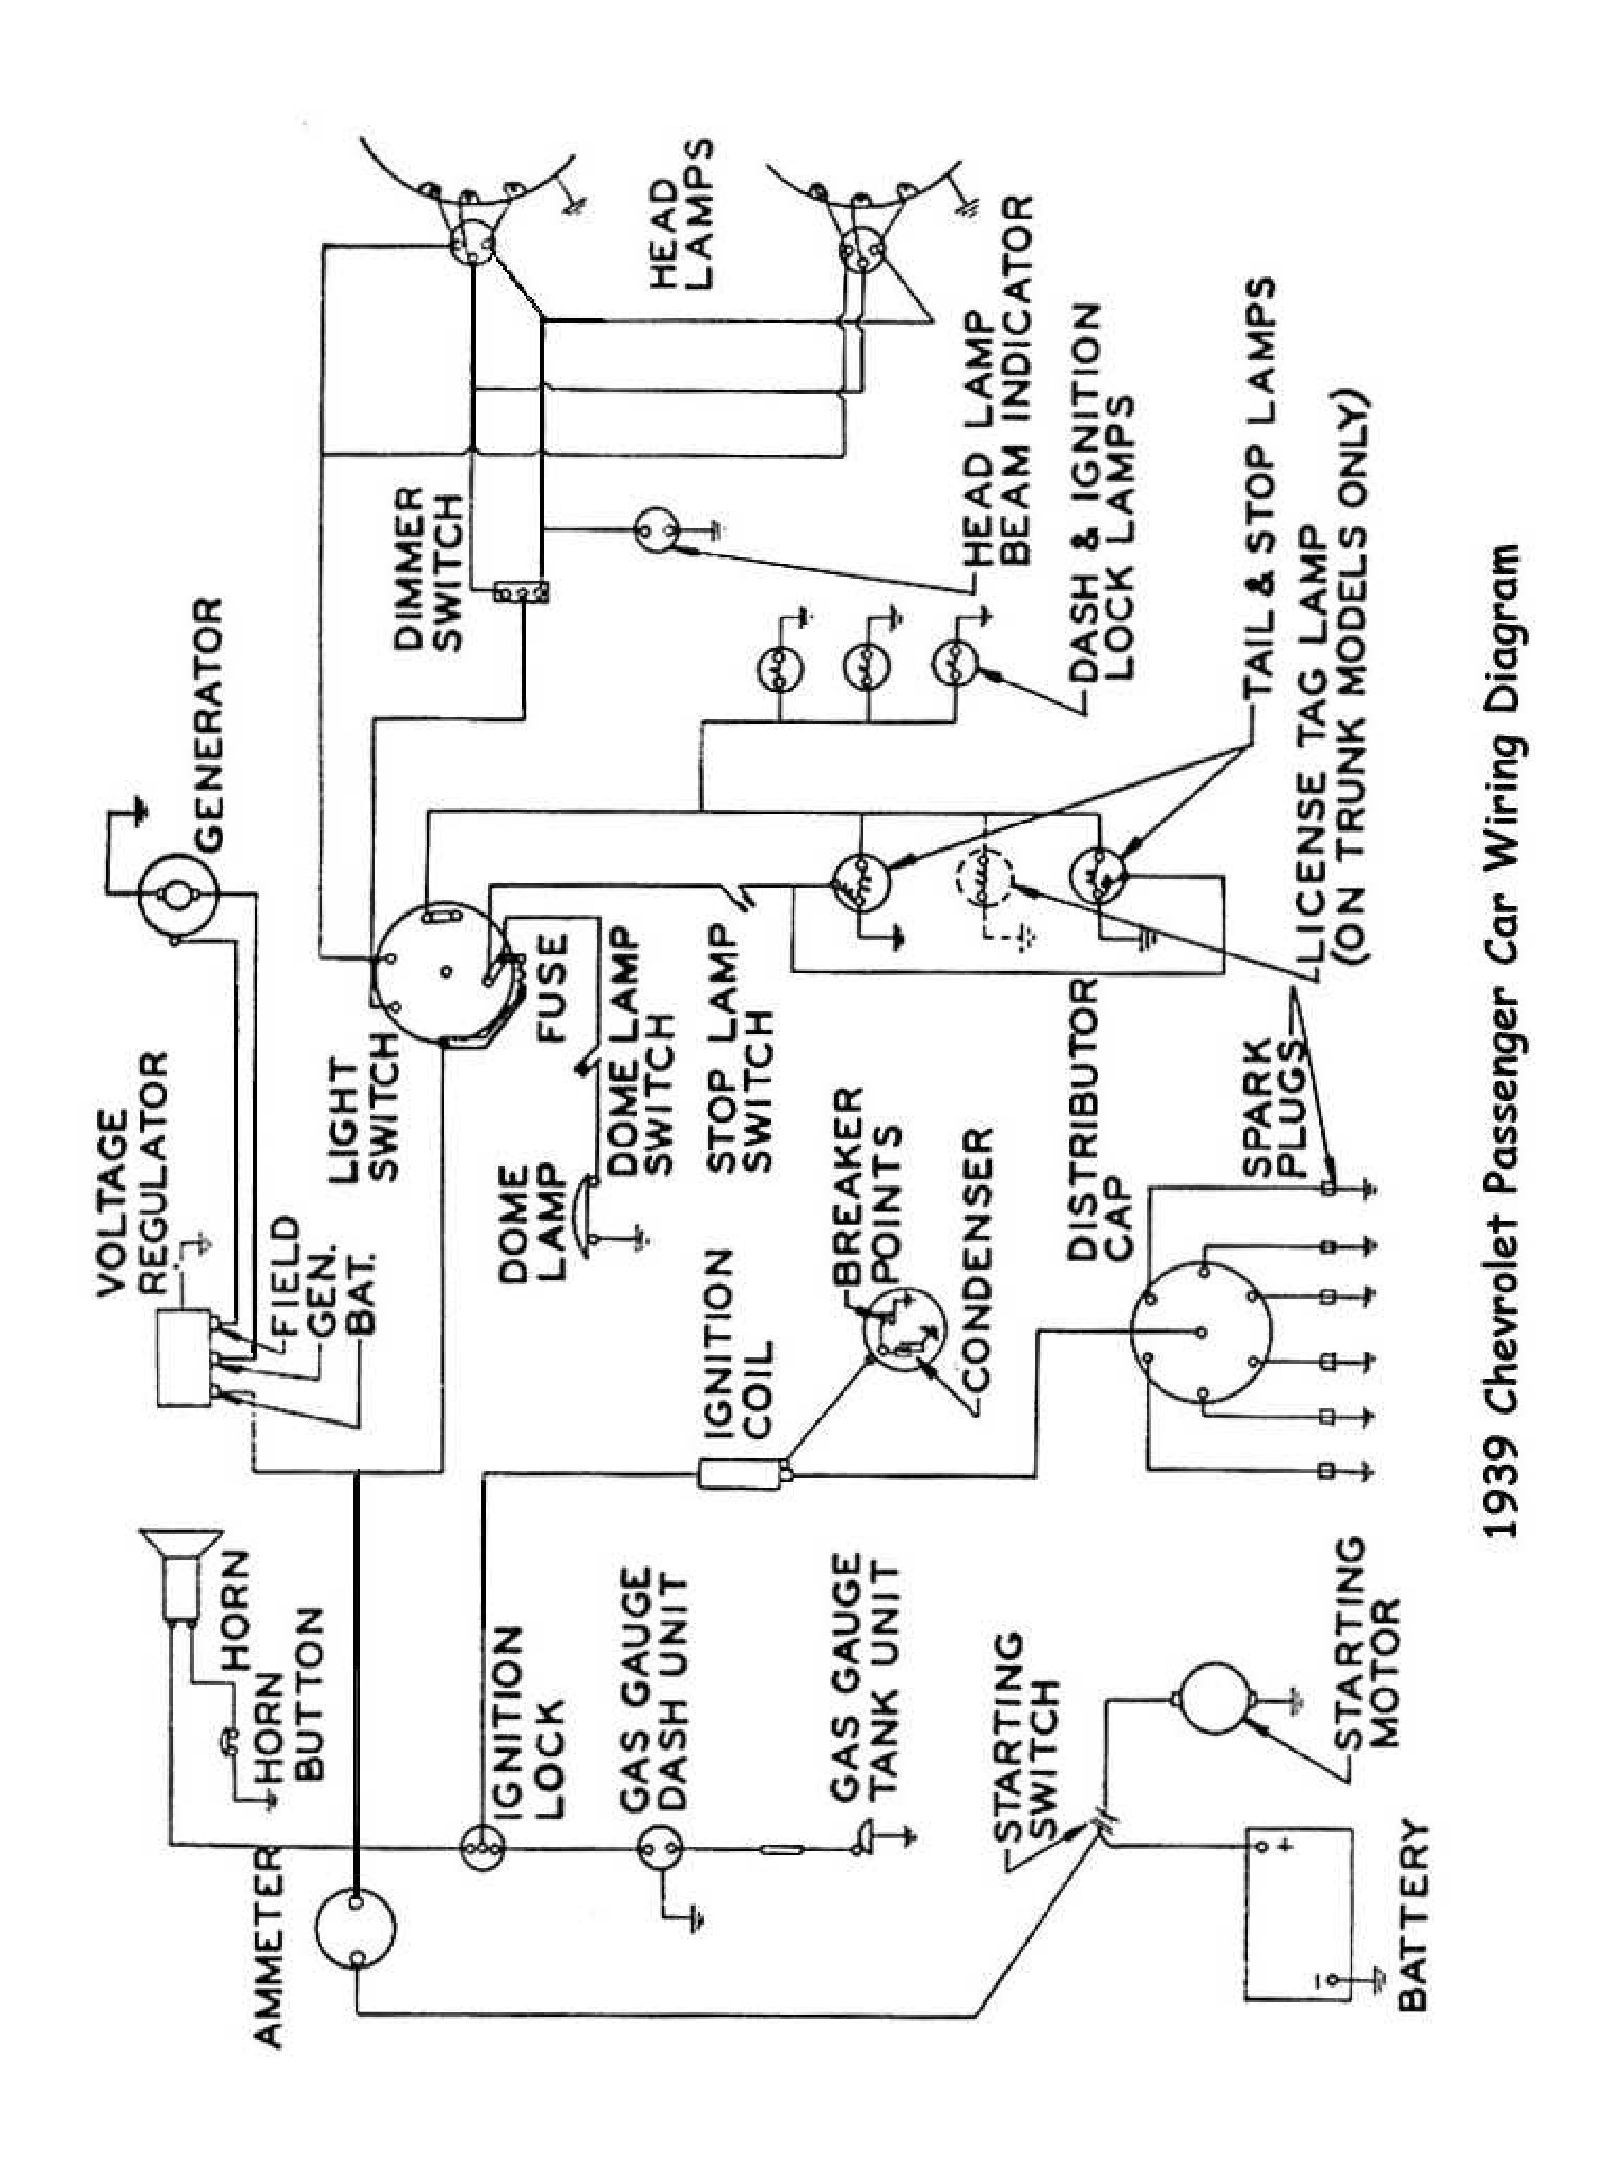 Basic Ignition Wiring Diagram Awesome Ignition Wiring Diagram Diagram Of Basic Ignition Wiring Diagram